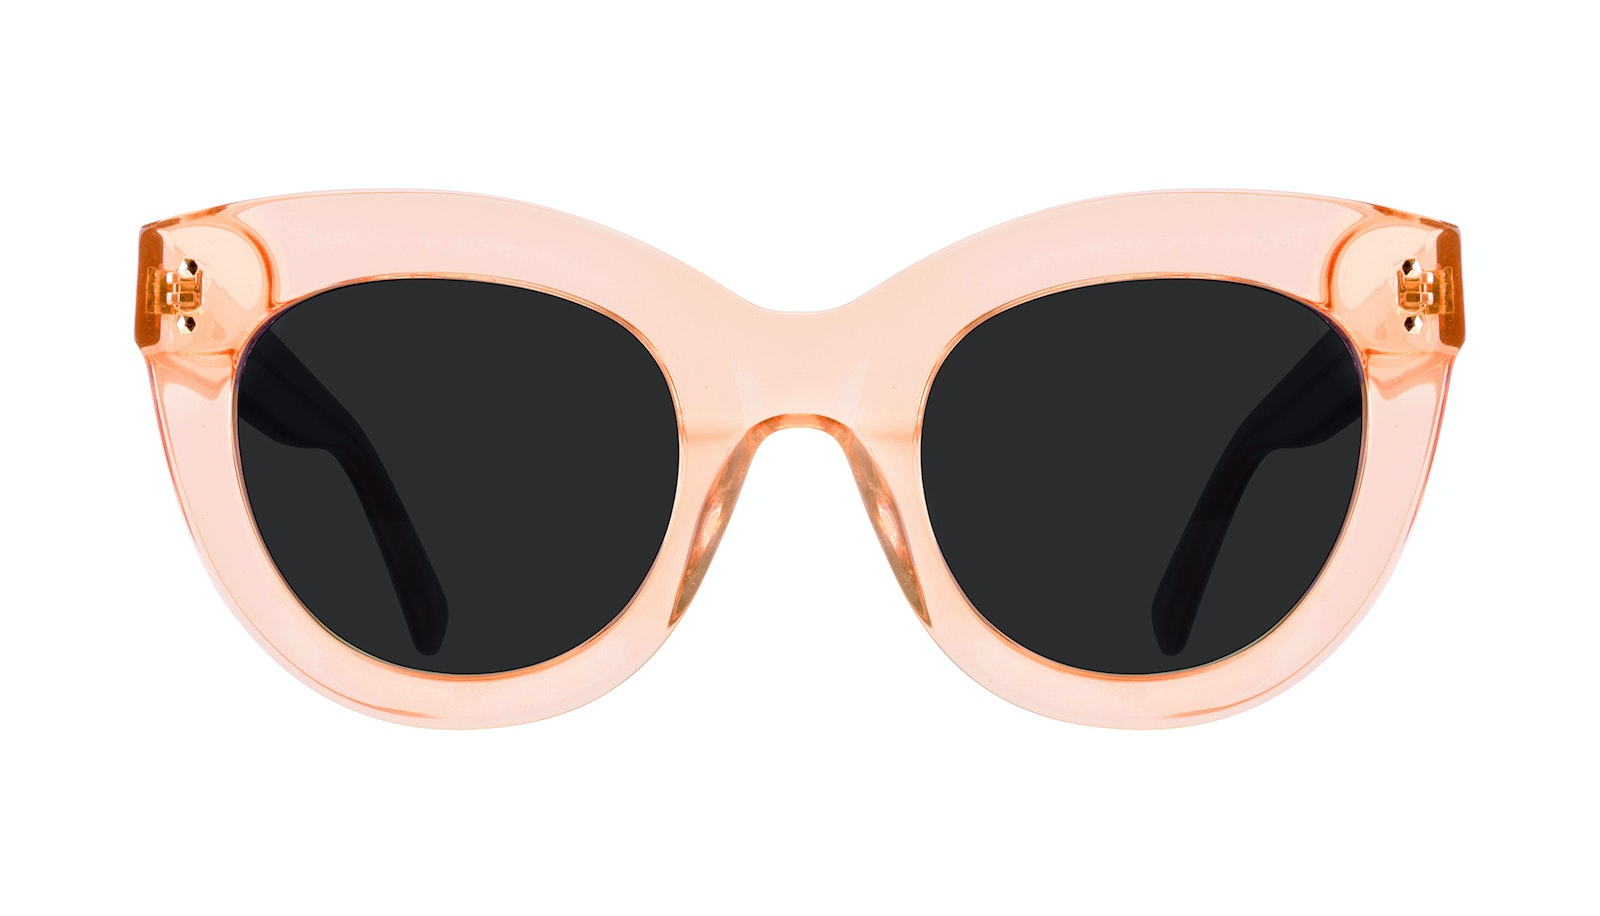 Affordable Fashion Glasses Sunglasses Women Dusk Peach